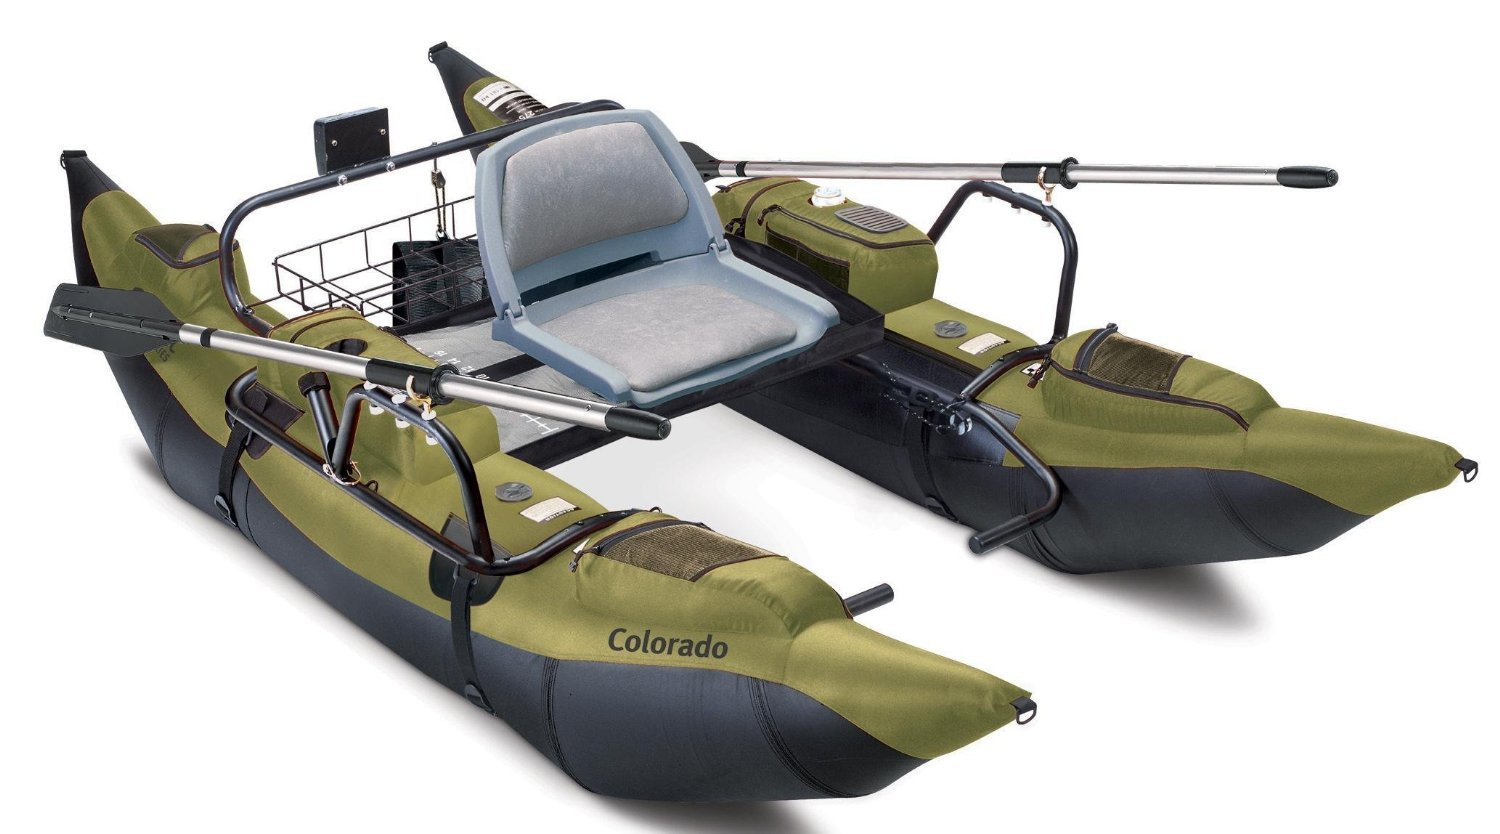 Inflatable Colorado Pontoon Boat